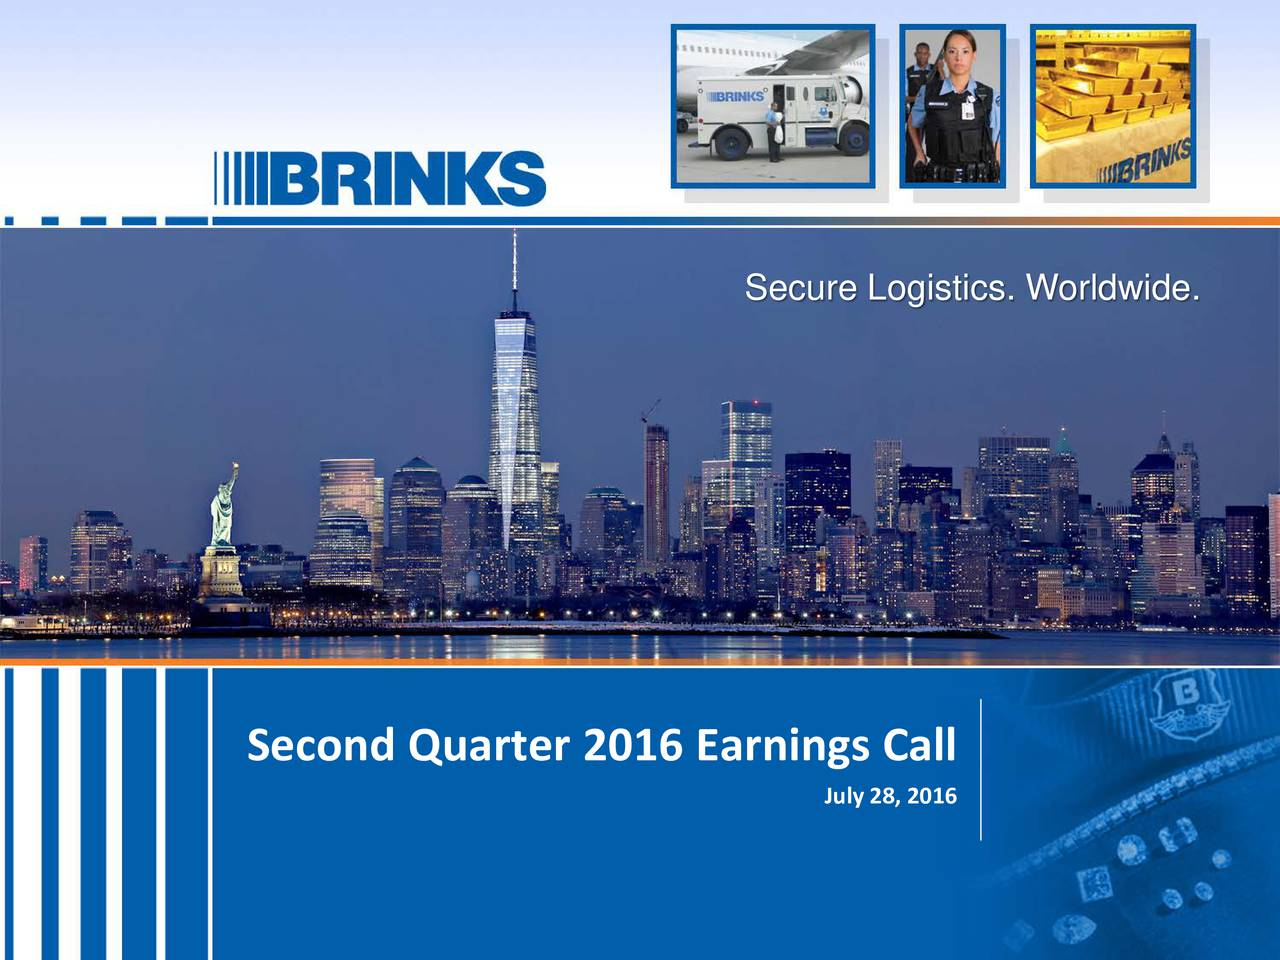 Second Quarter 2016 Earnings Call July 28, 2016